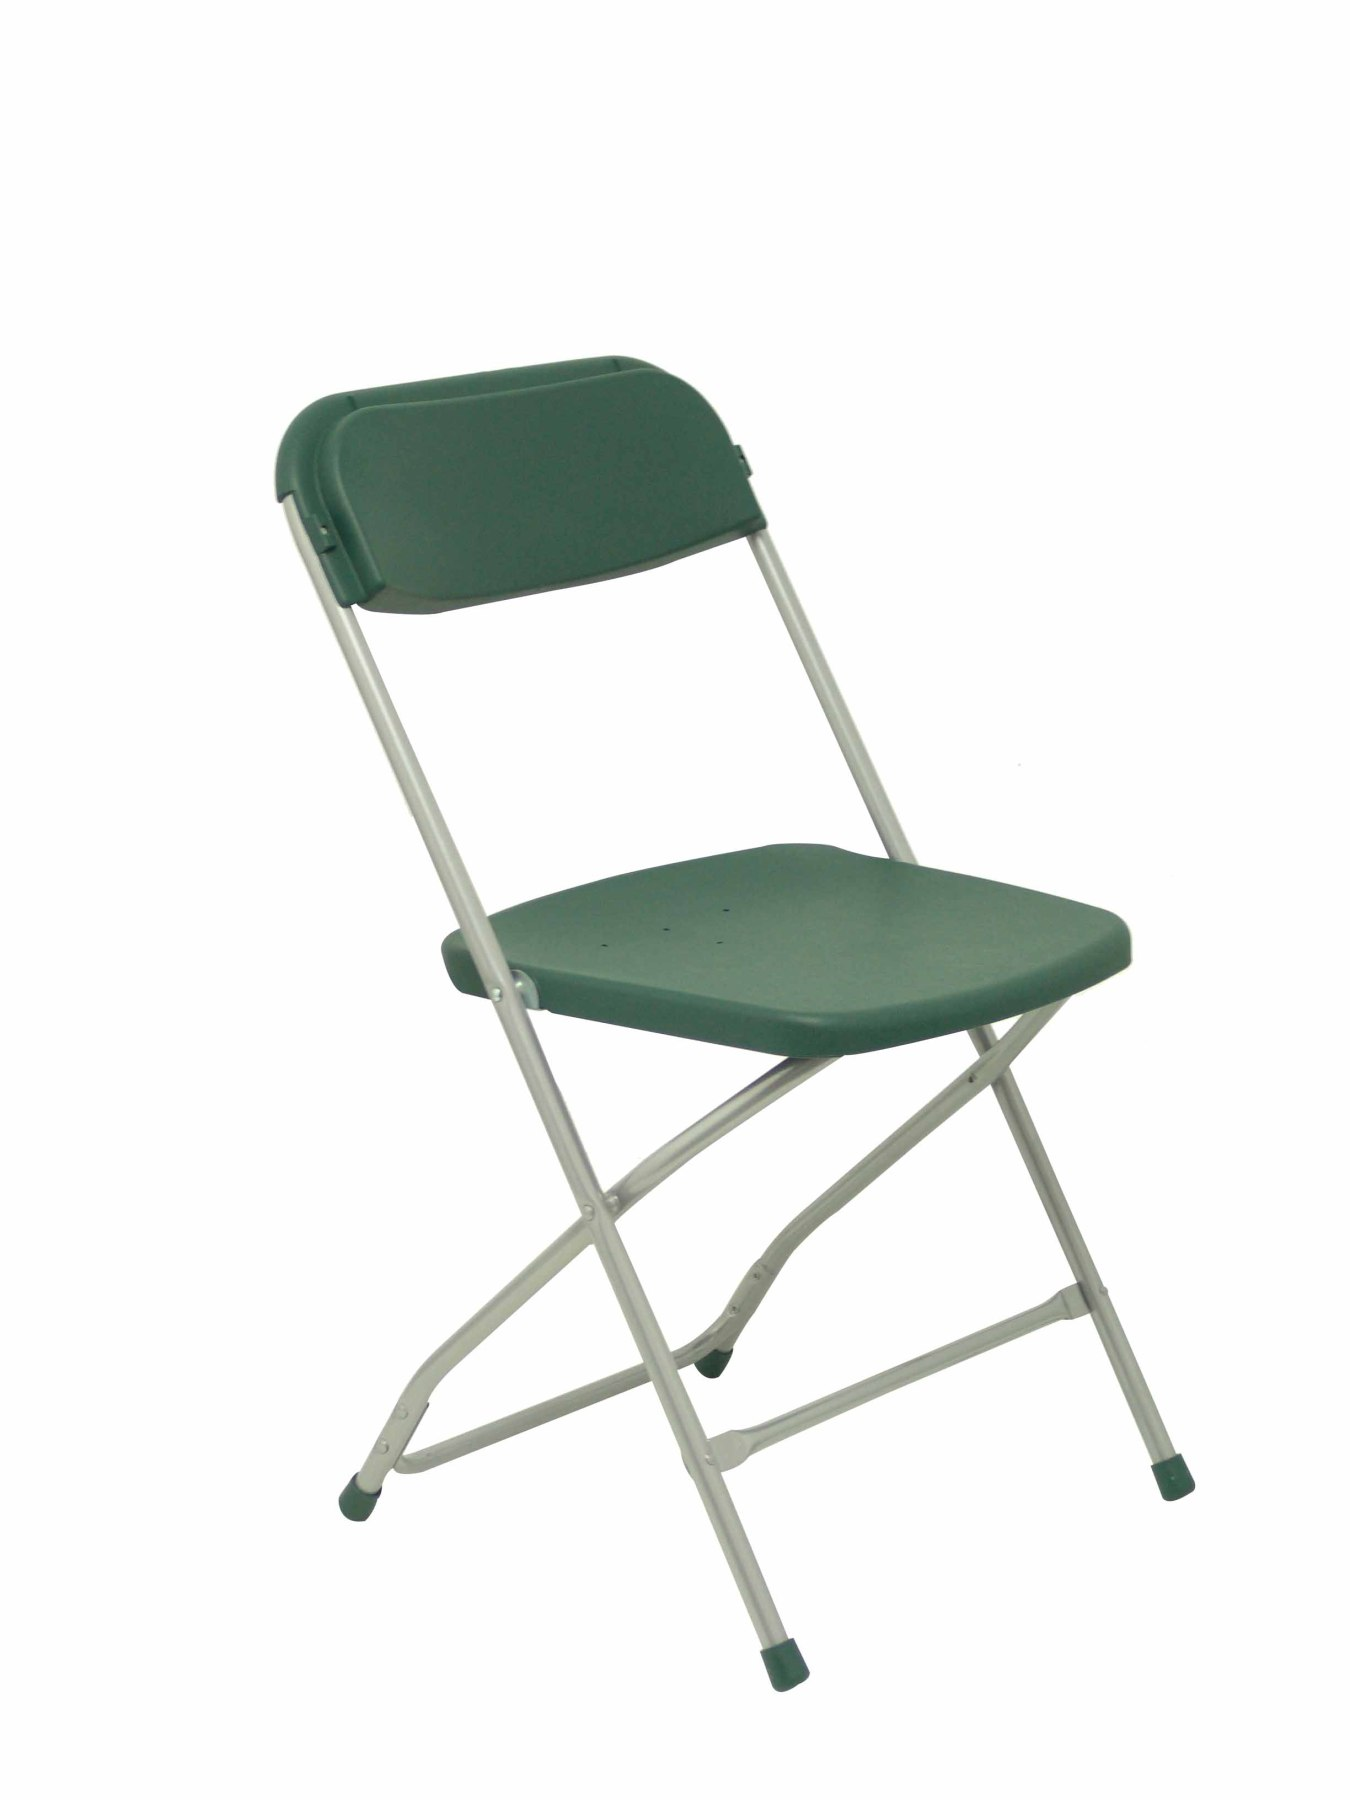 Pack 5 Folding Chairs Conference Seat And Backrest Polypropylene Green PIQUERAS & CURLED Model Nurseries